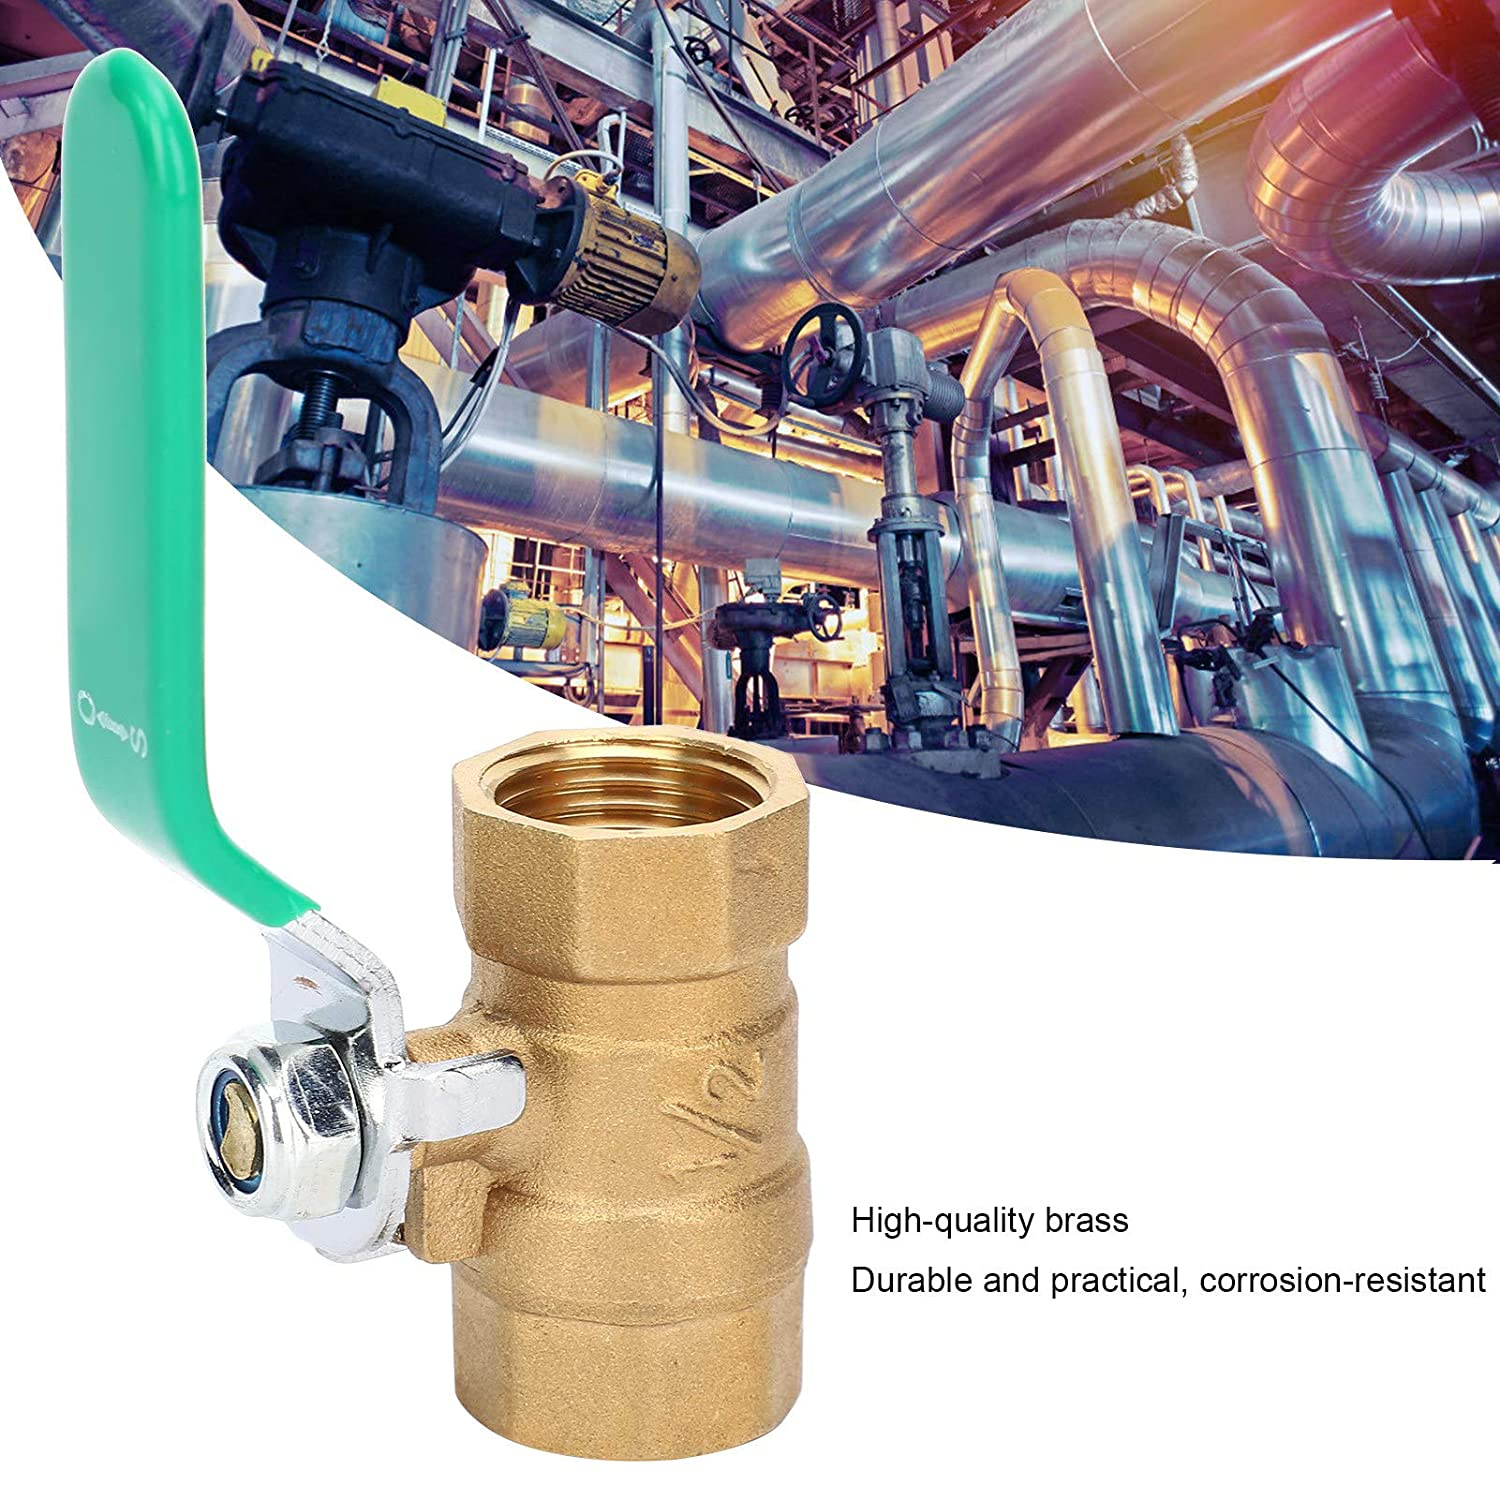 2 Female Thread Valve 1//2in Compression‑Proof and Explosion‑Proof for Cold//Hot Water Piping System Ball Valve